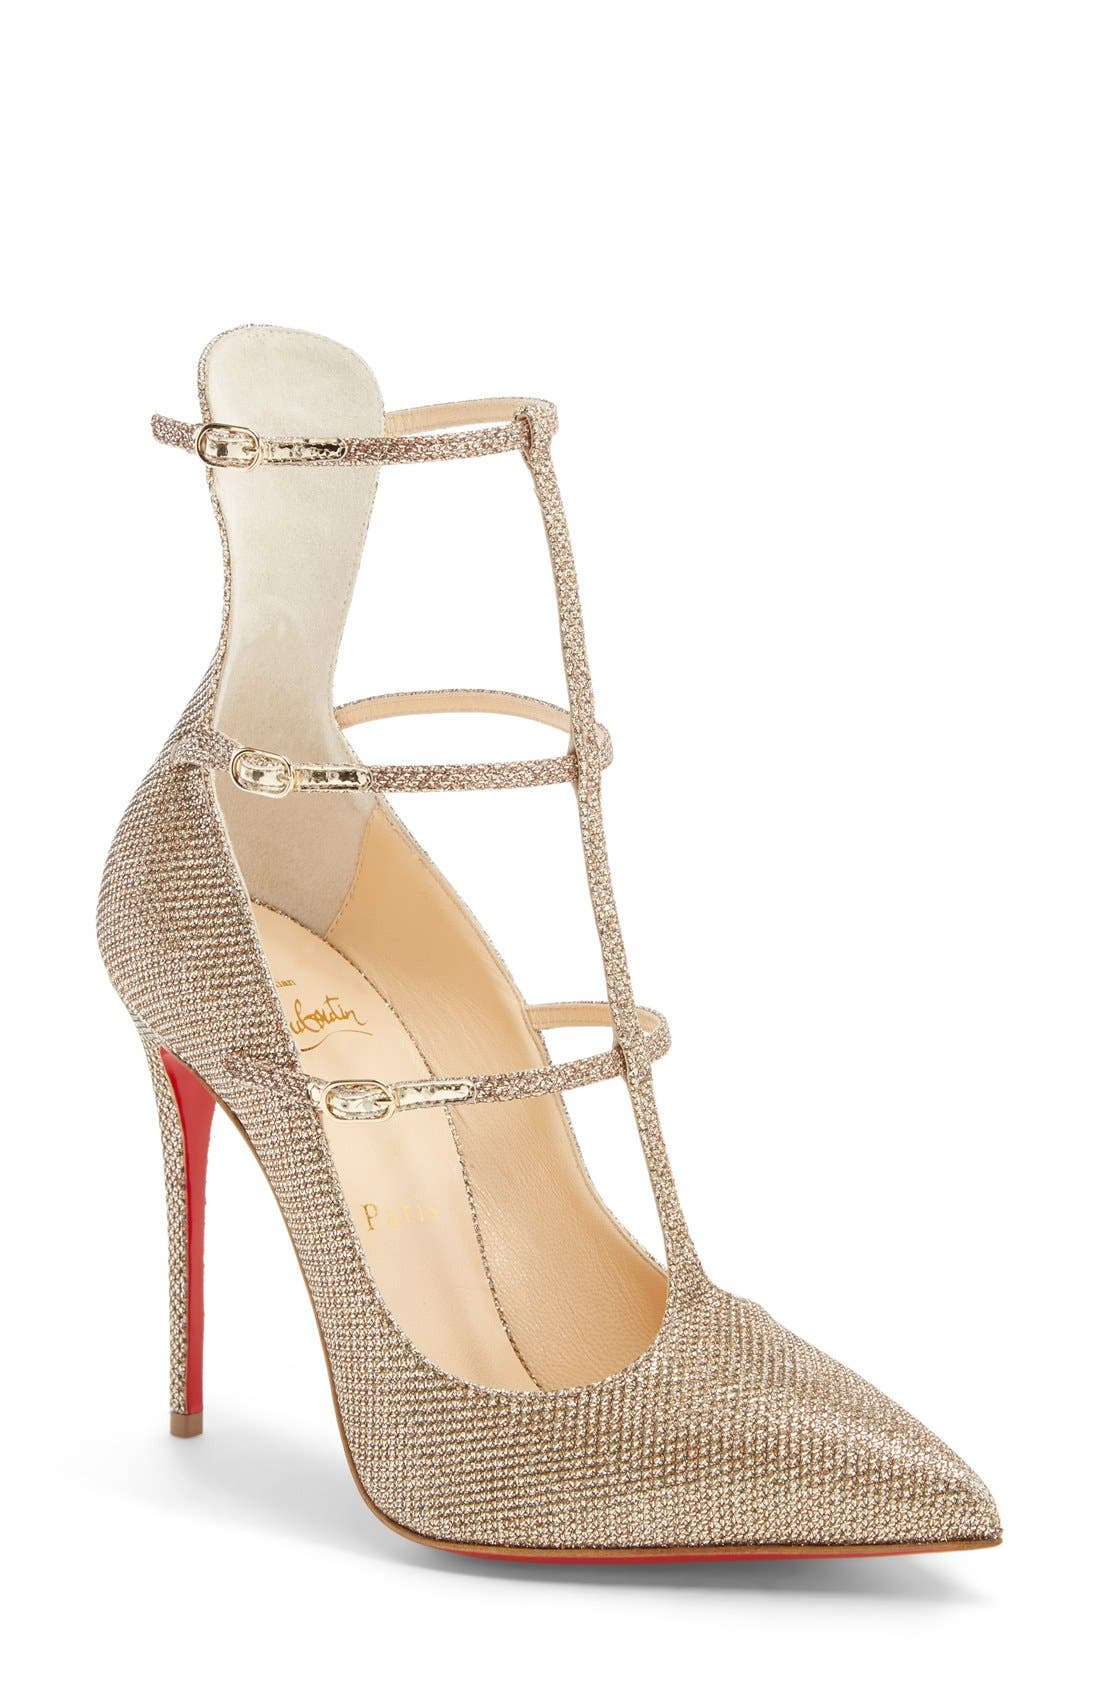 Alternate Image 1 Selected - Christian Louboutin 'Toeless' Caged Pointy Toe Pump